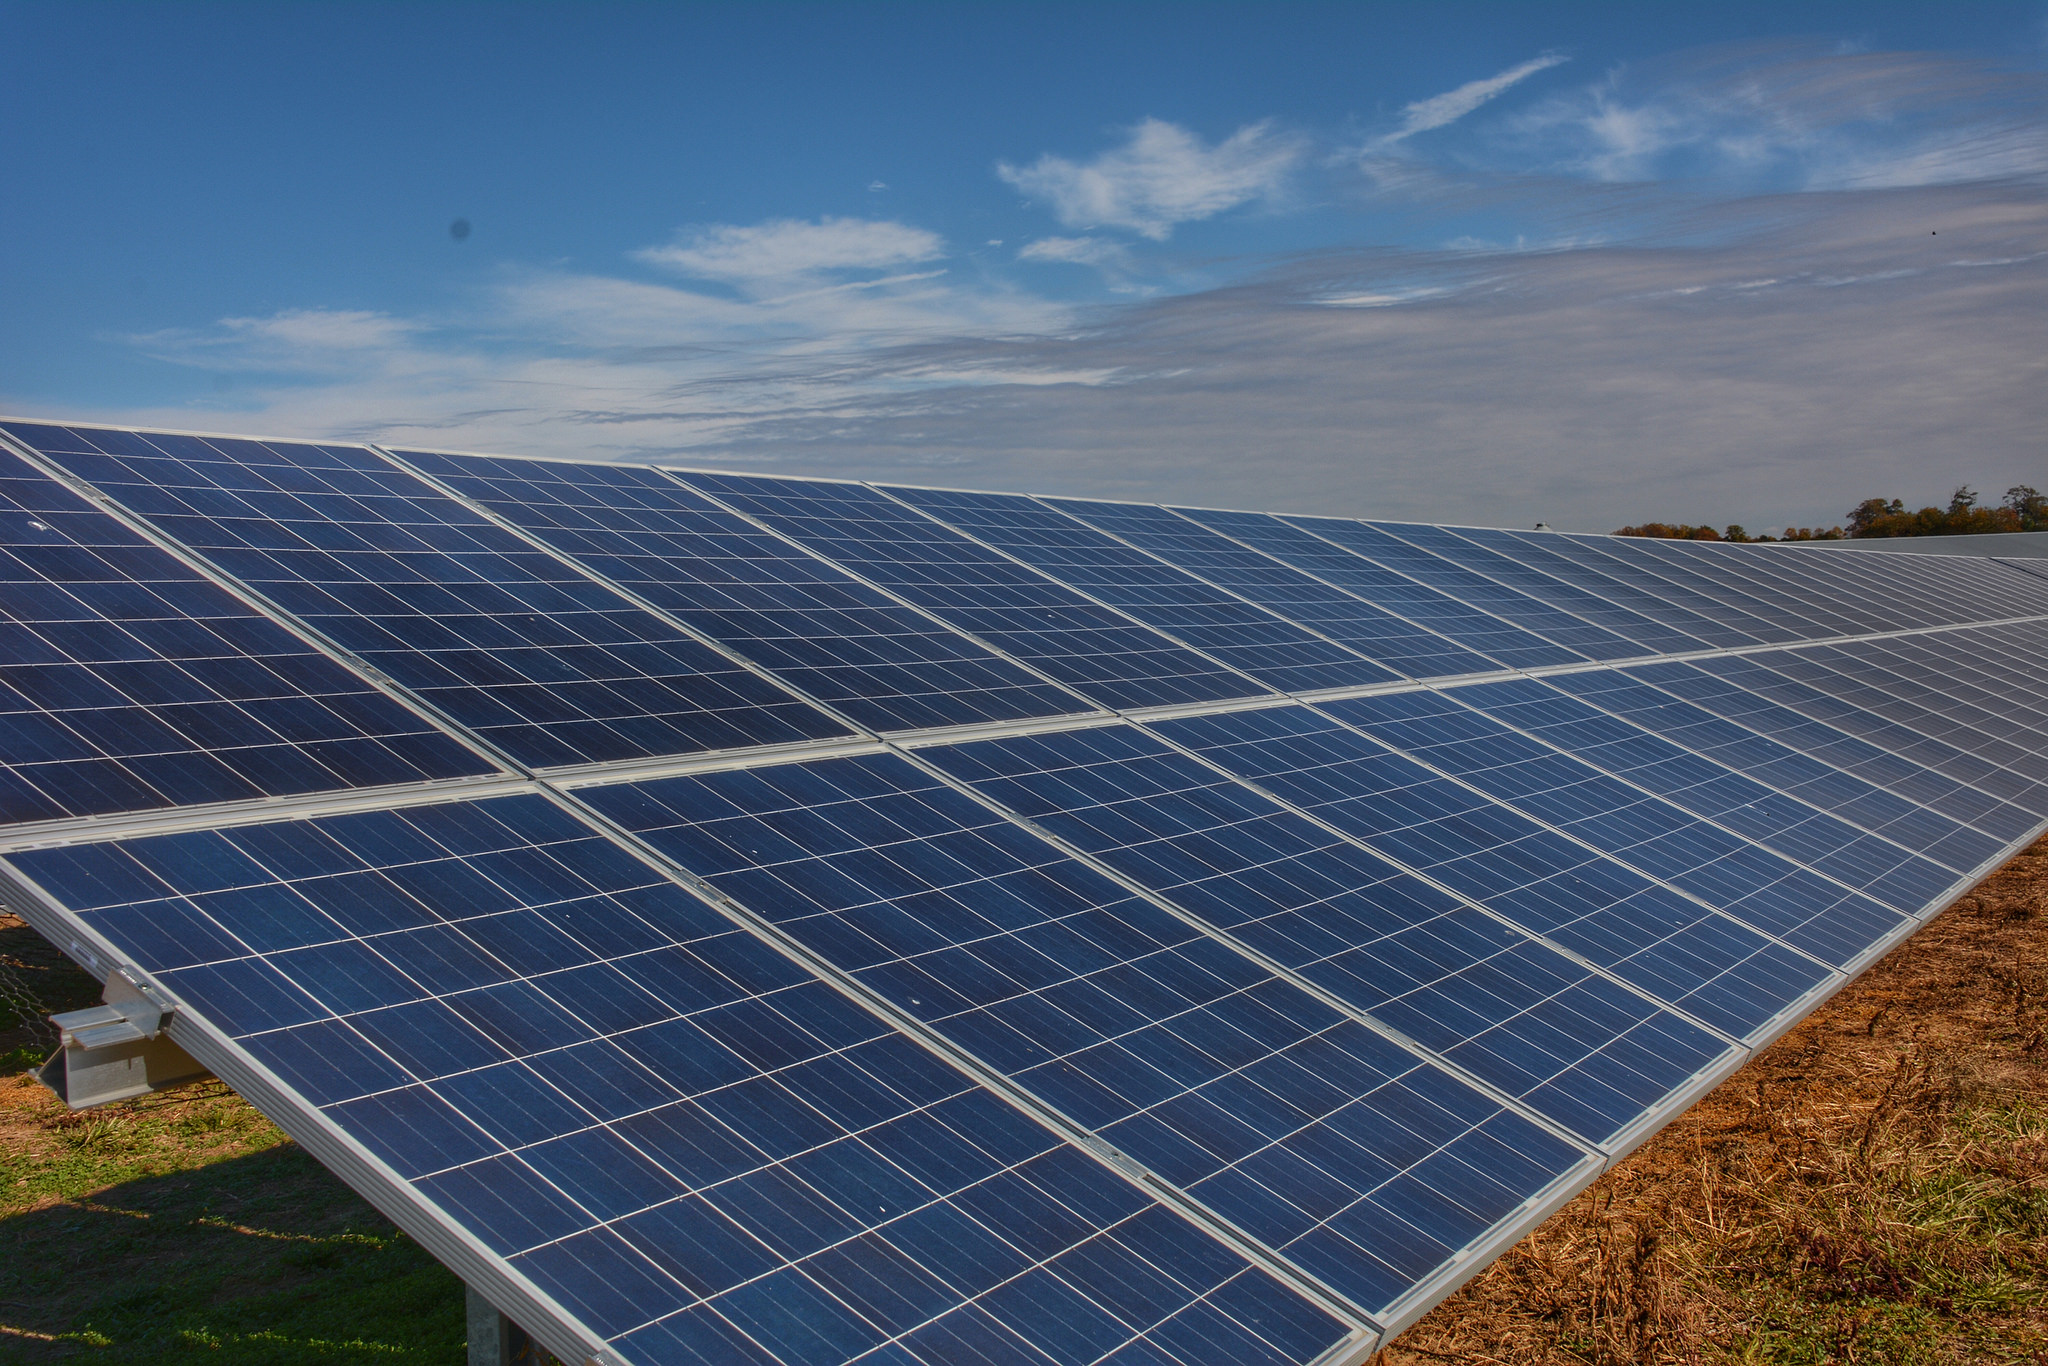 The 15MW solar project is expected to be operational by late 2017. Image: Delaware Cooperative Extension